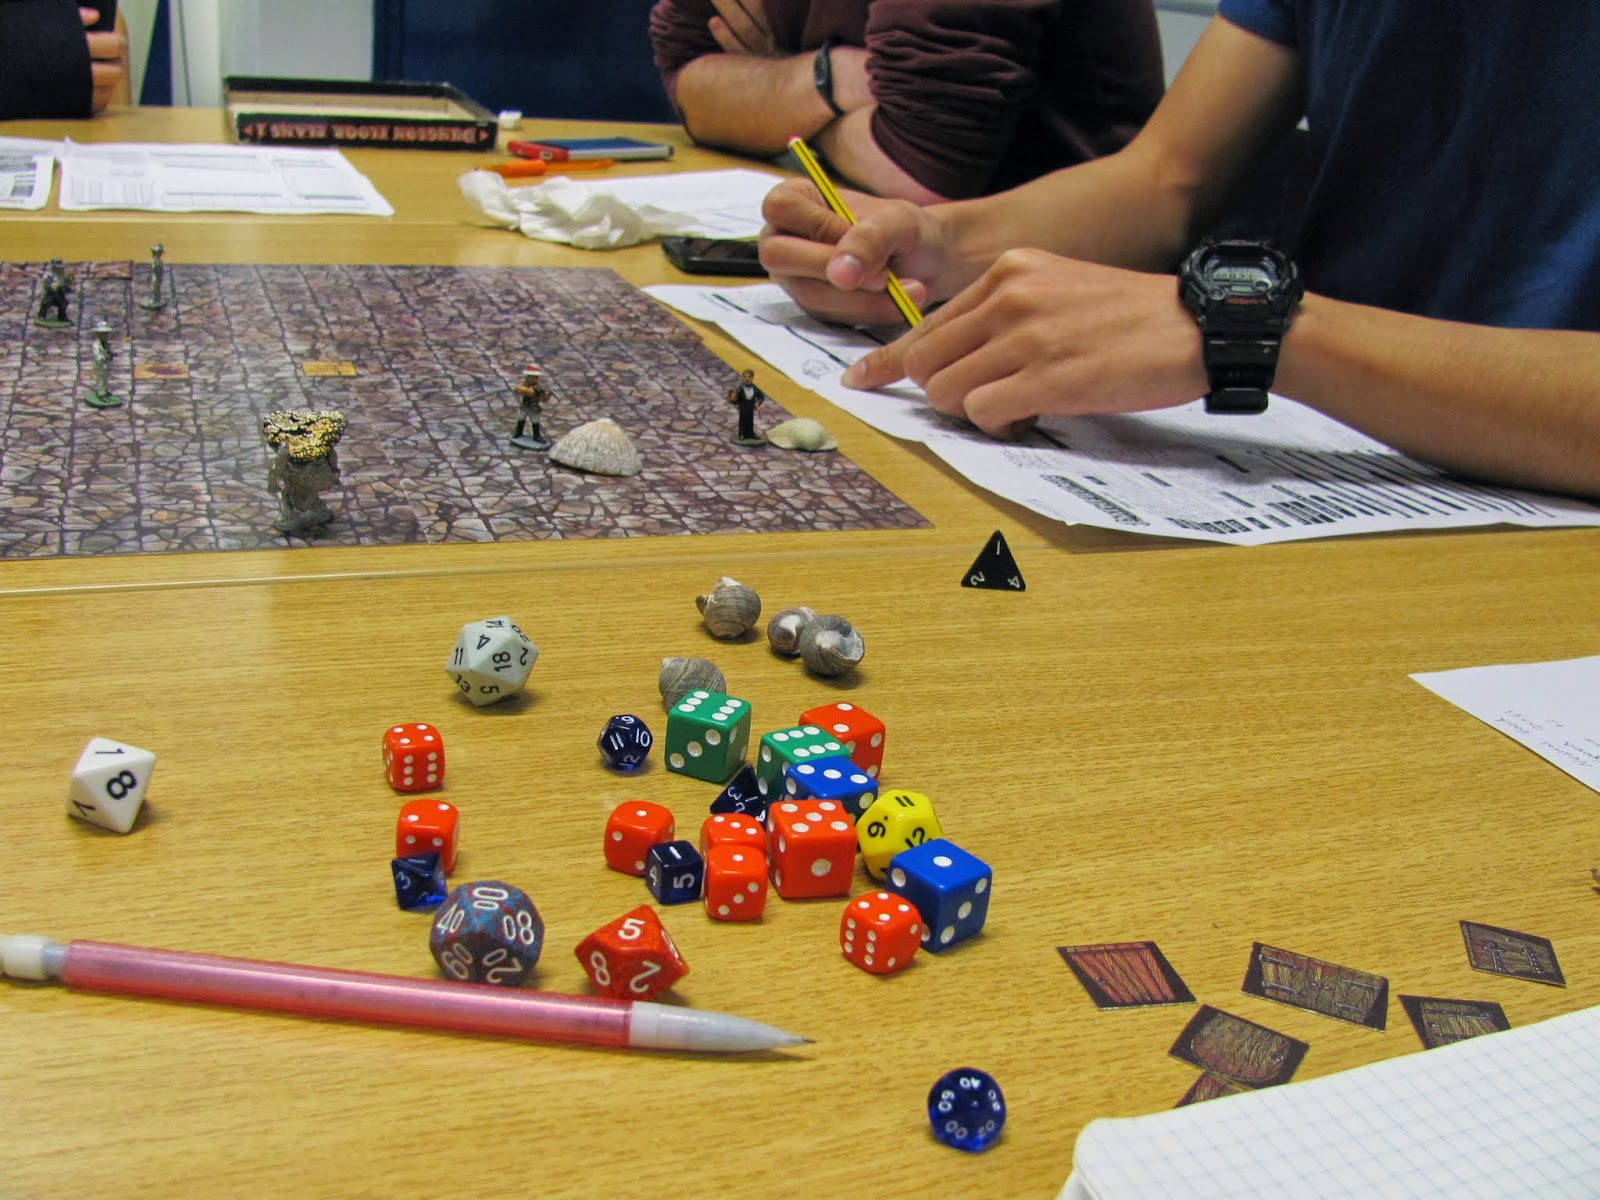 Dice and character sheets are seen with a battle map game board playing Pathfinder RPG